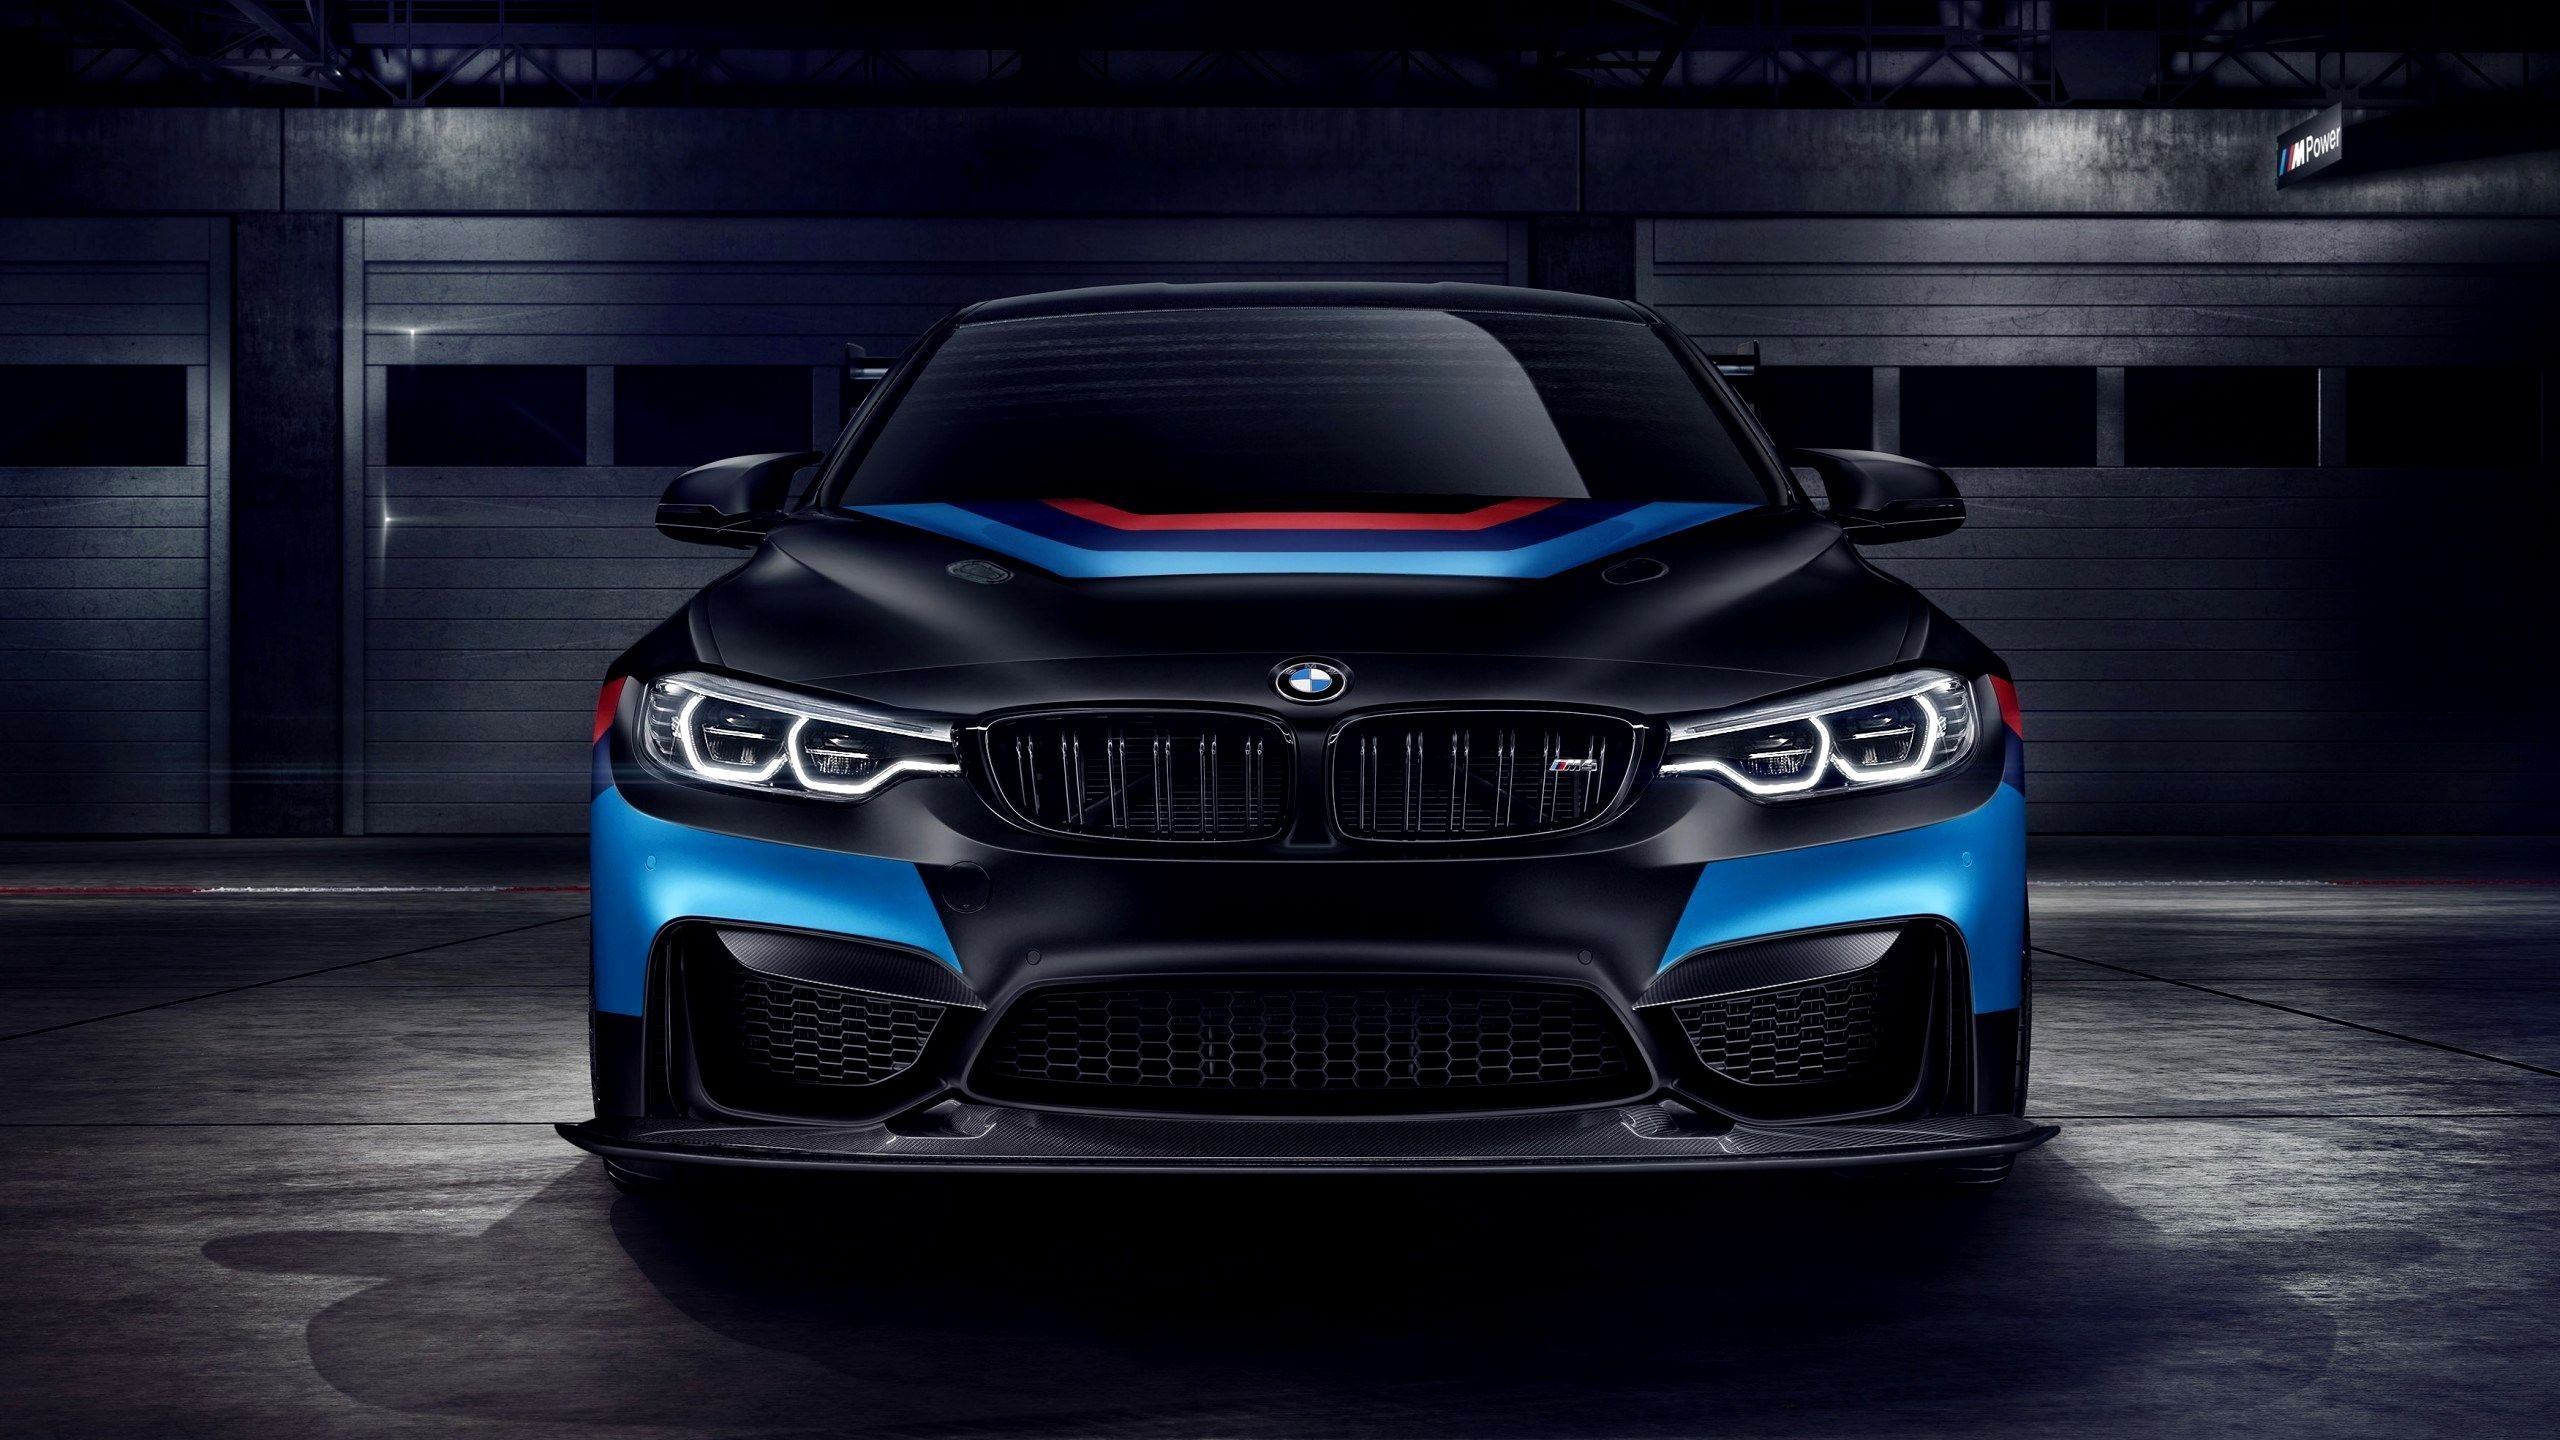 Luxury Car Hd Wallpaper For Pc In 2020 Bmw Wallpapers Bmw Bmw M4